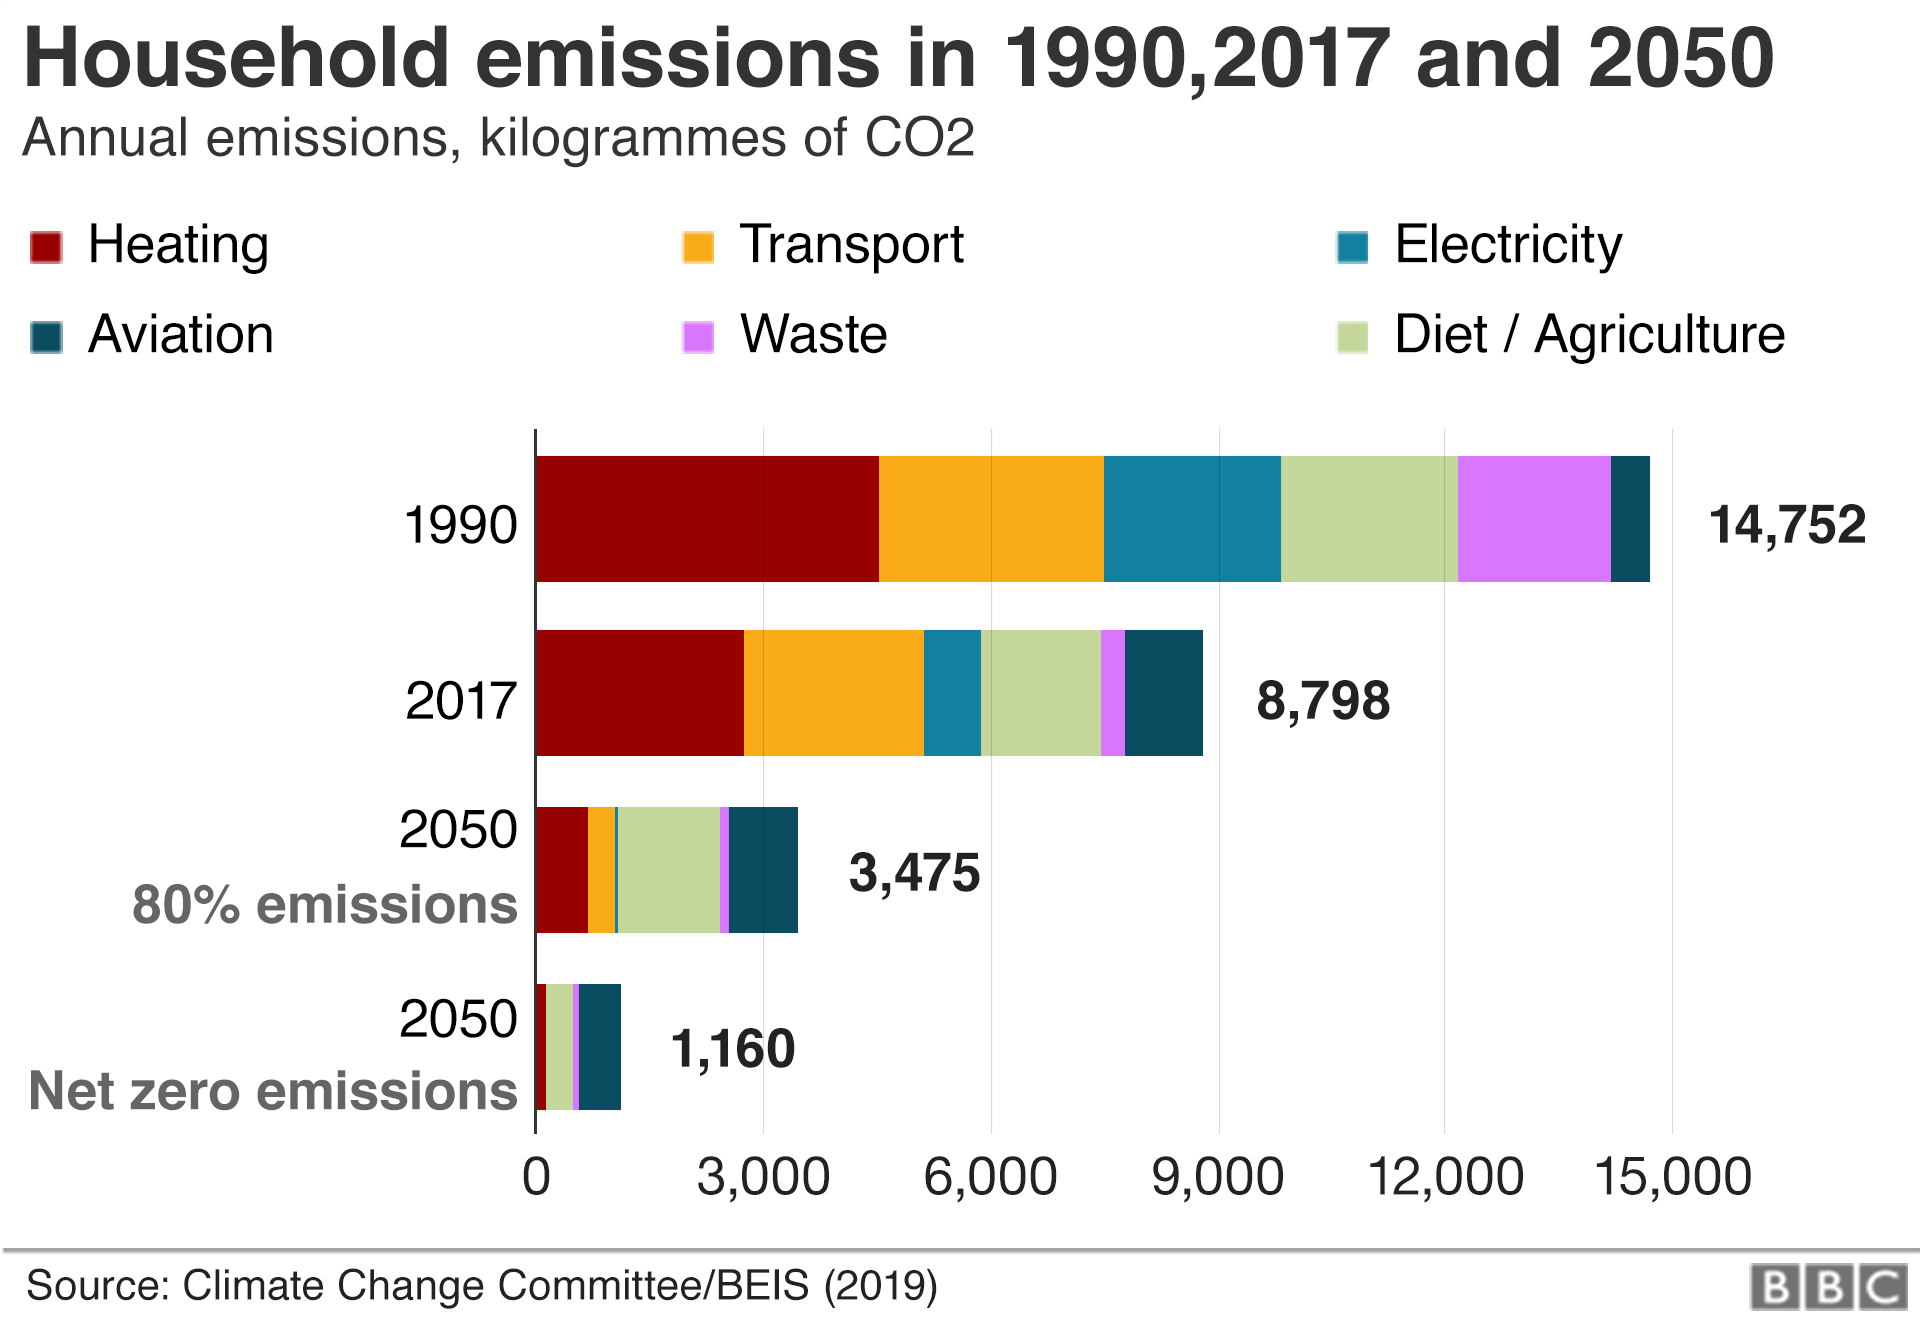 Chart showing the breakdown of household emissions in 1990, 2017 and 2050